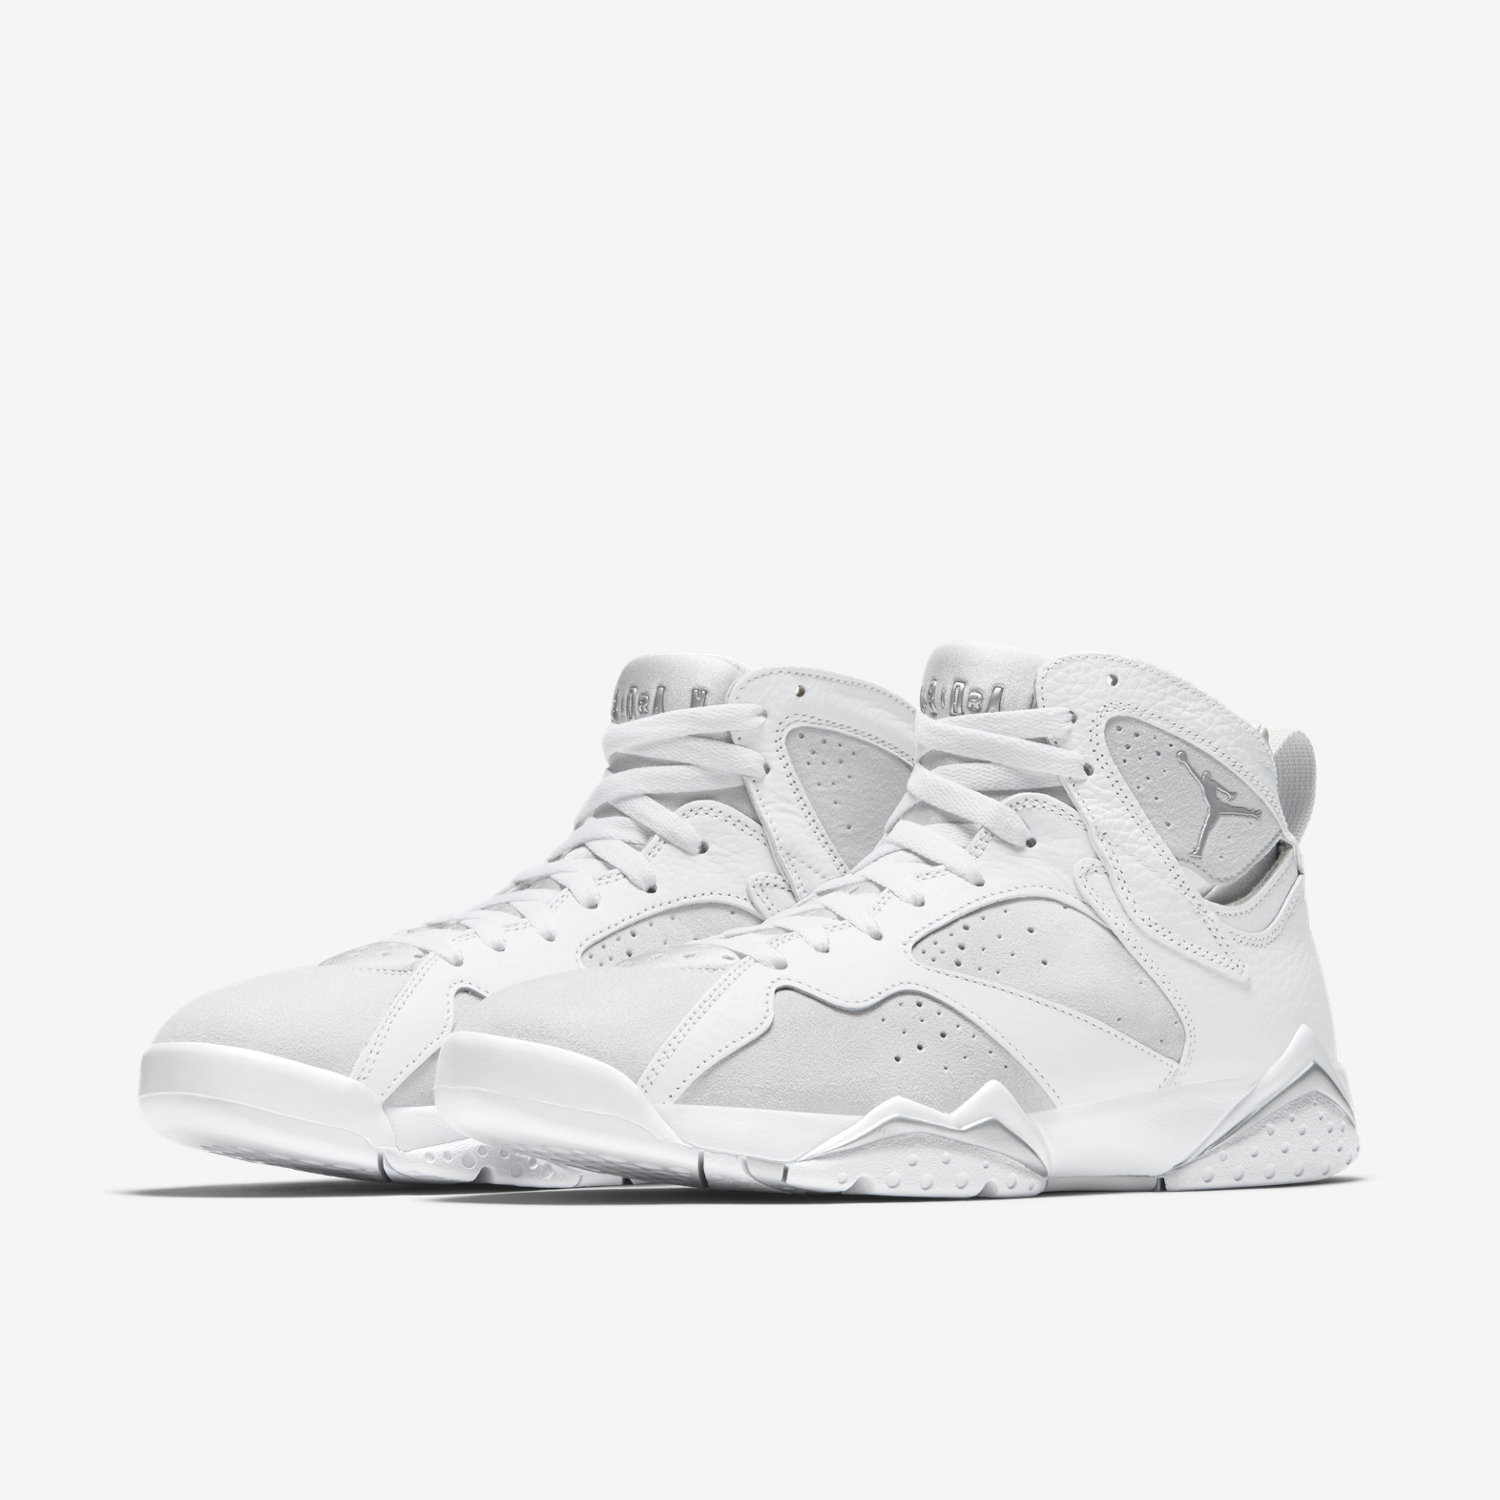 new concept 28eea acf80 Air Jordan 4 Retro  White Cement Grey  Release Date. Nike SNKRS